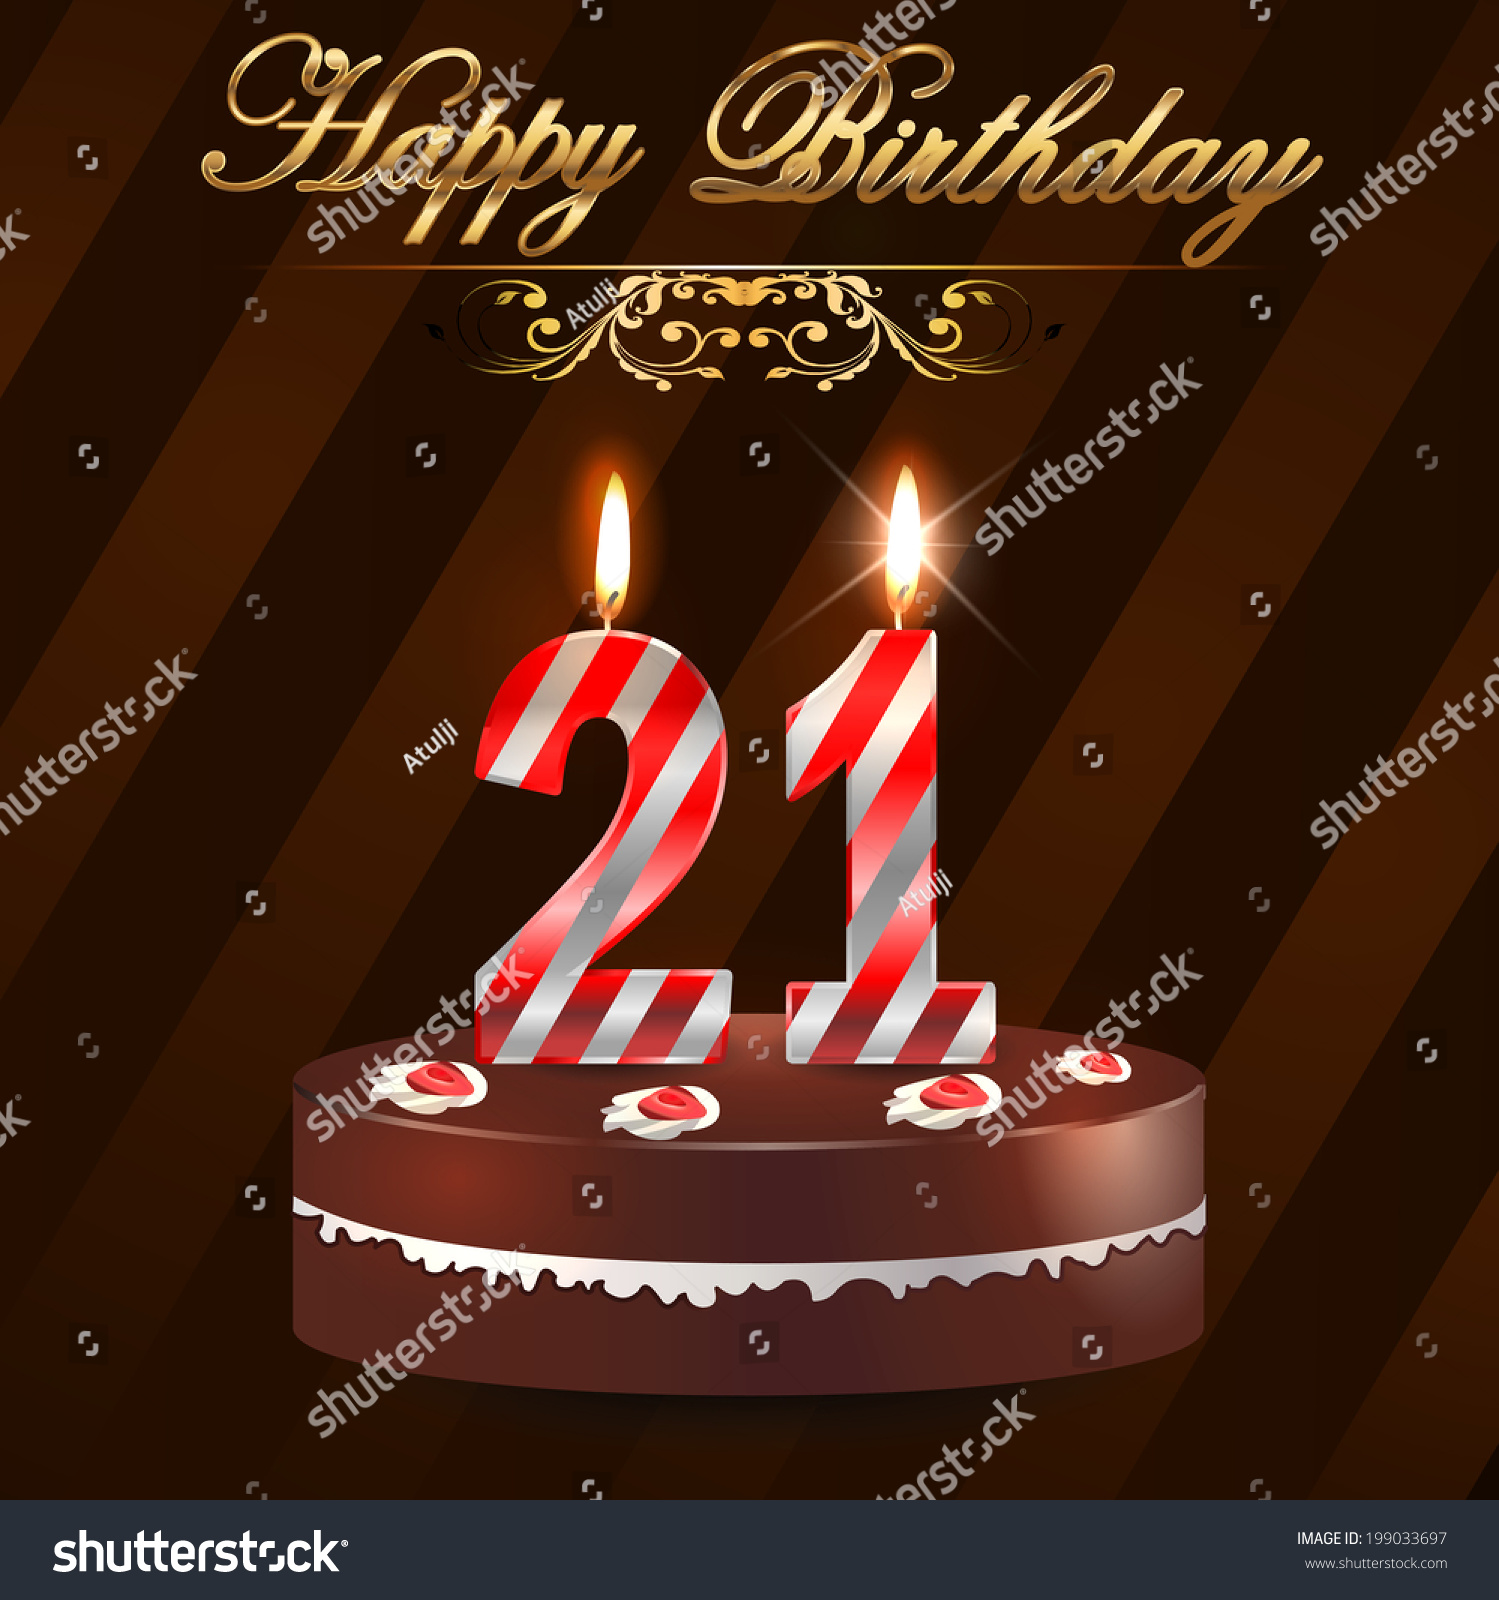 21 Year Happy Birthday Card With Cake And Candles 21st